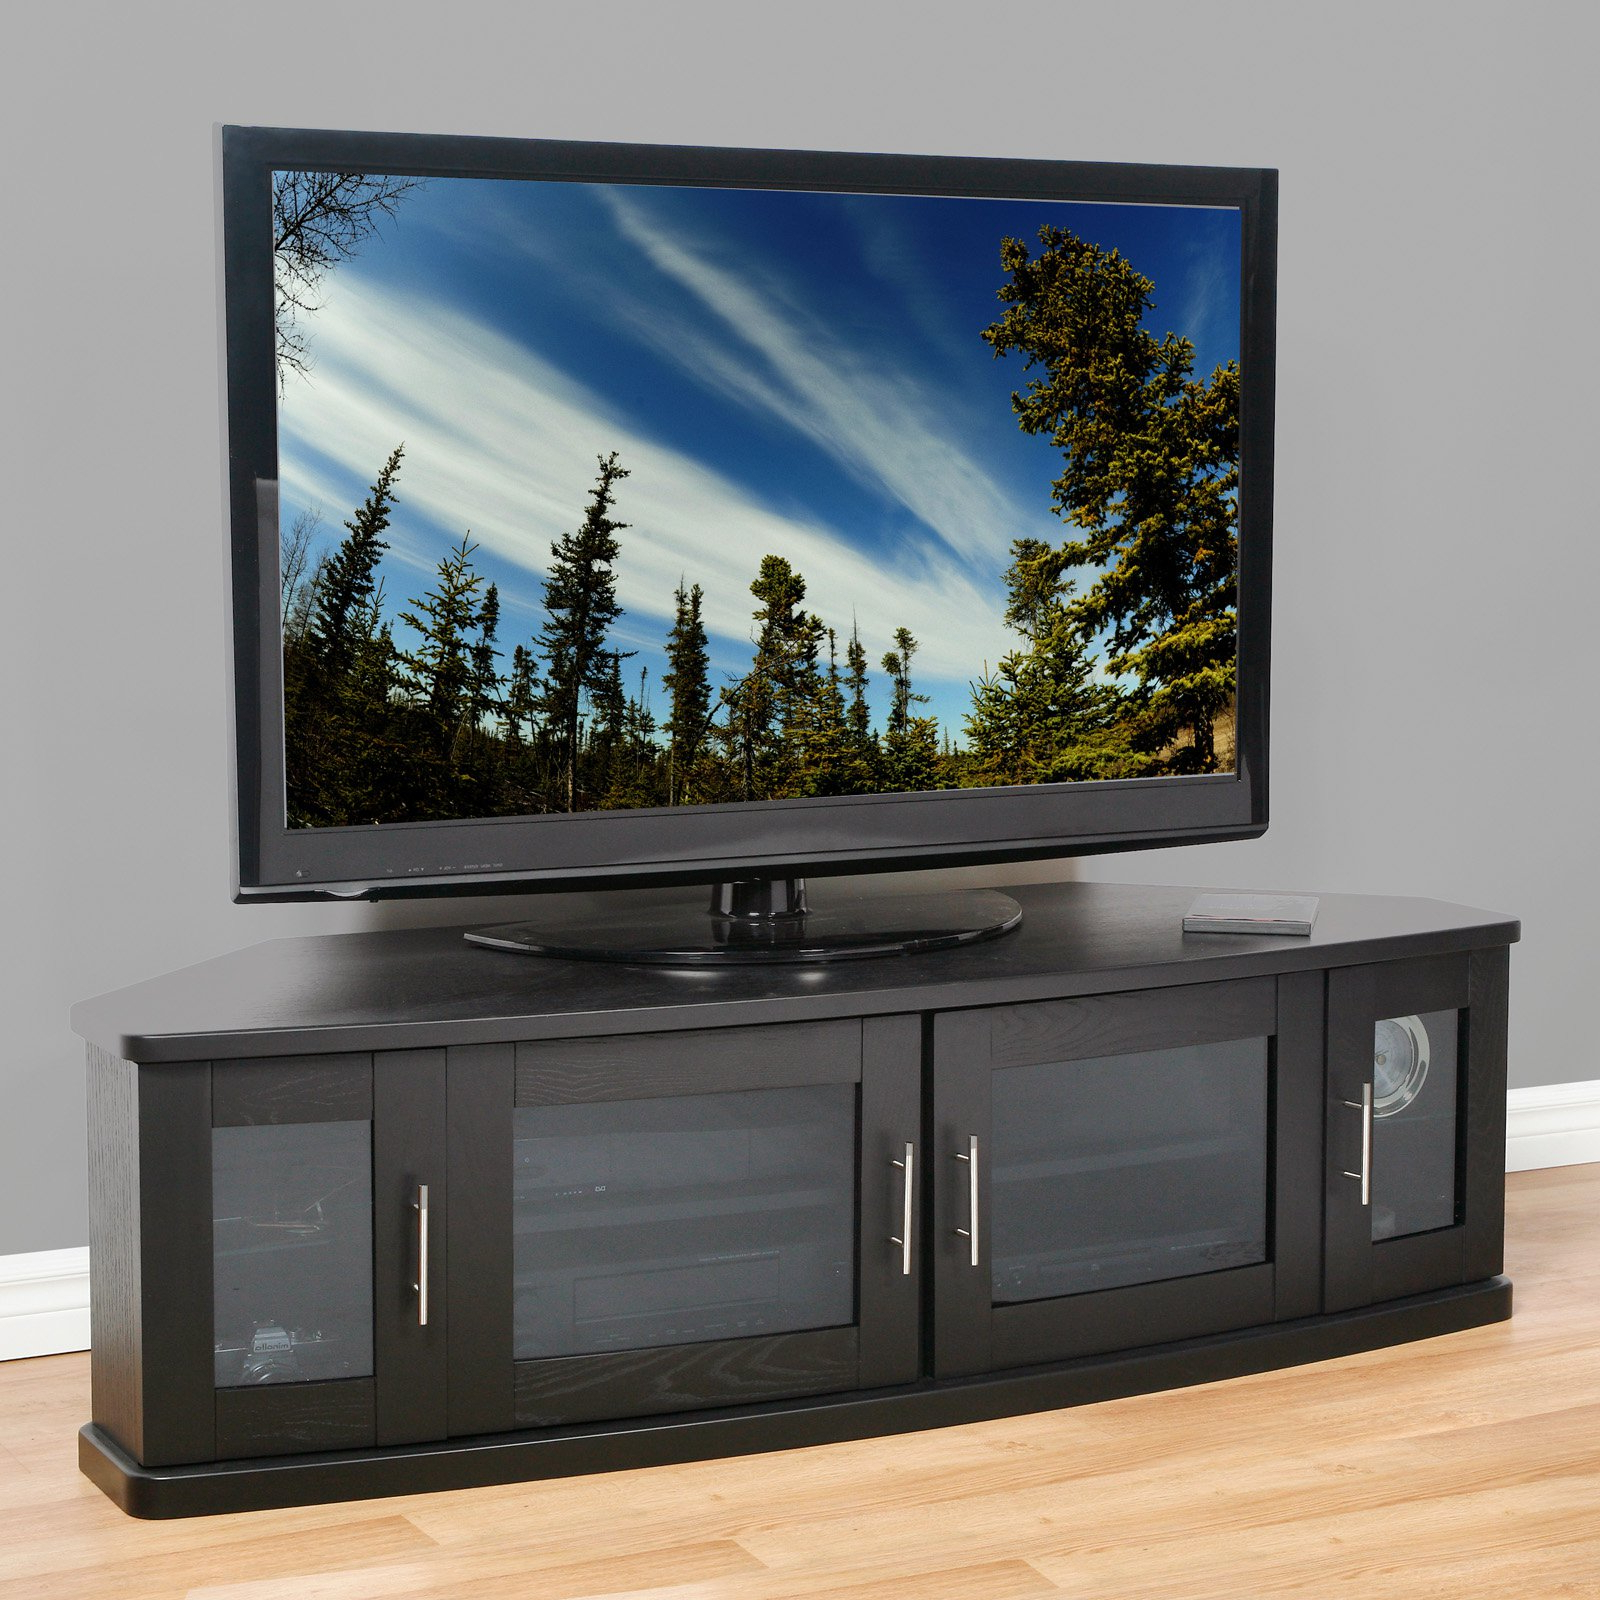 Tv Cabinets With Glass Doors For Well Known Chrome Display Stands Clear Tv With Glass Shelves Stand Corner (View 14 of 20)